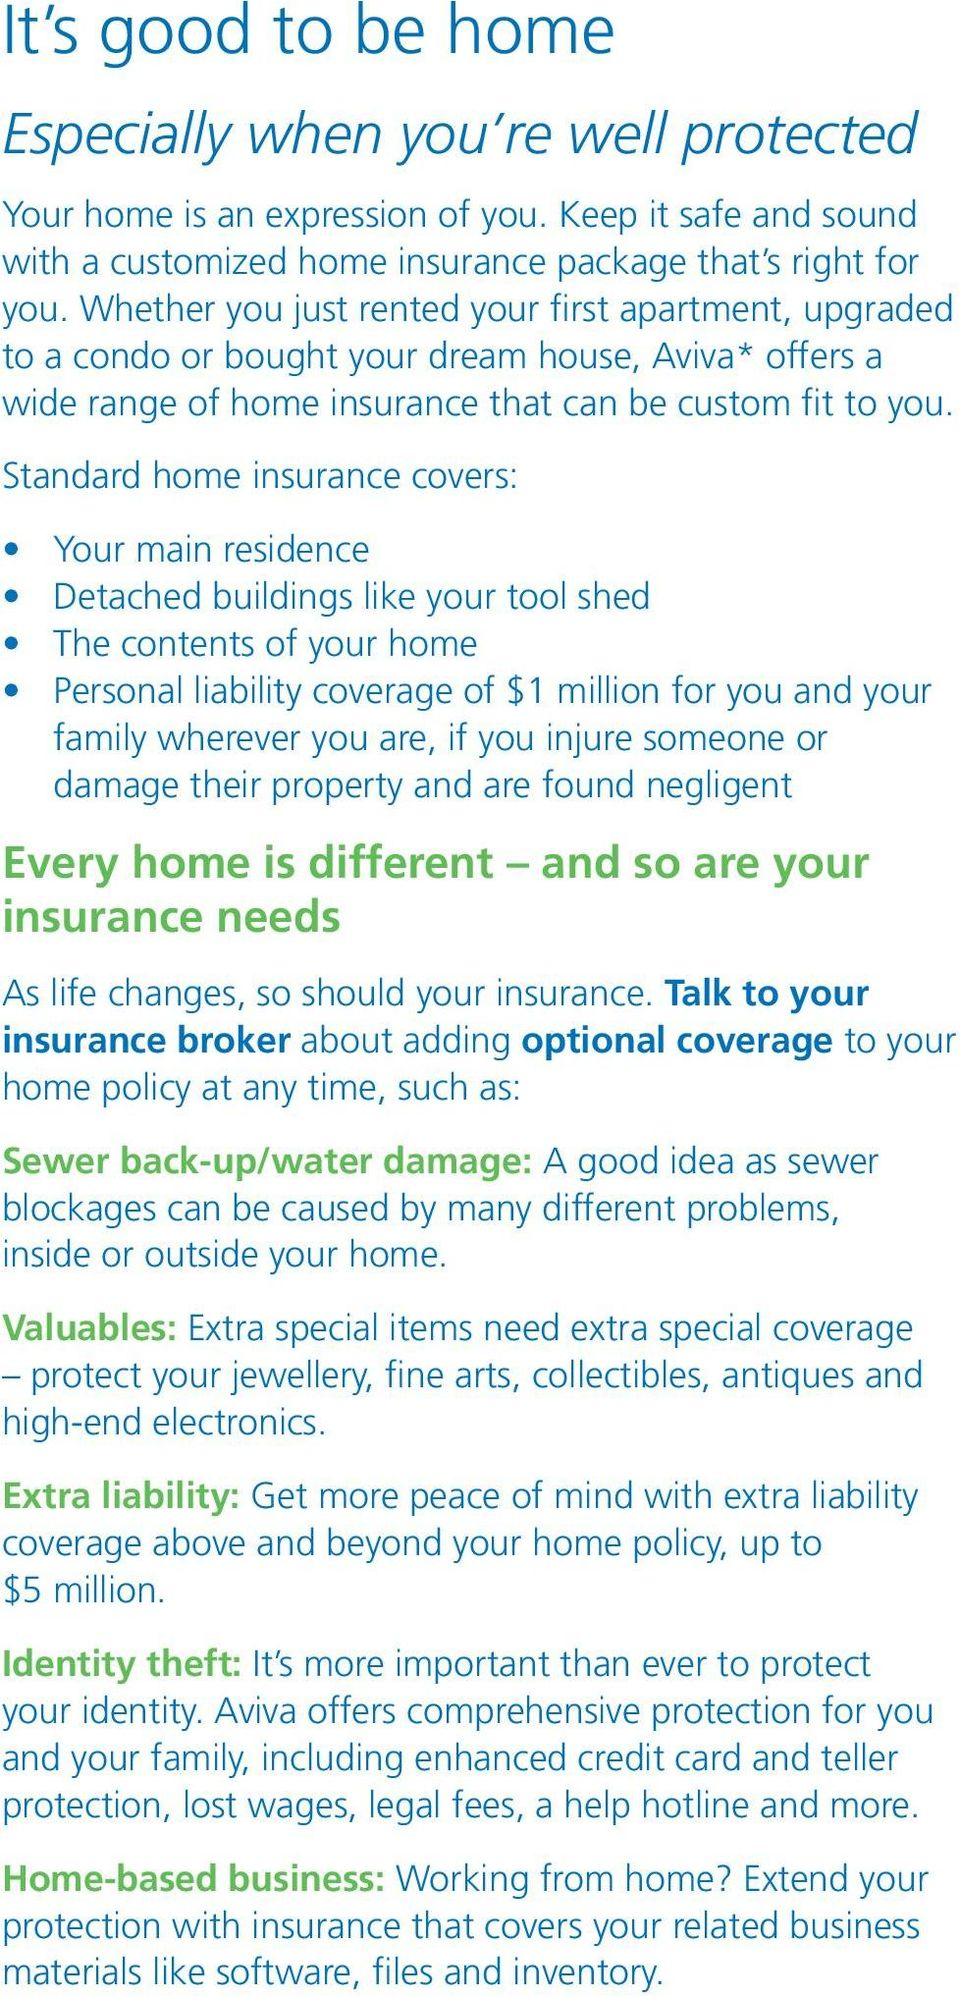 Standard home insurance covers: Your main residence Detached buildings like your tool shed The contents of your home Personal liability coverage of $1 million for you and your family wherever you